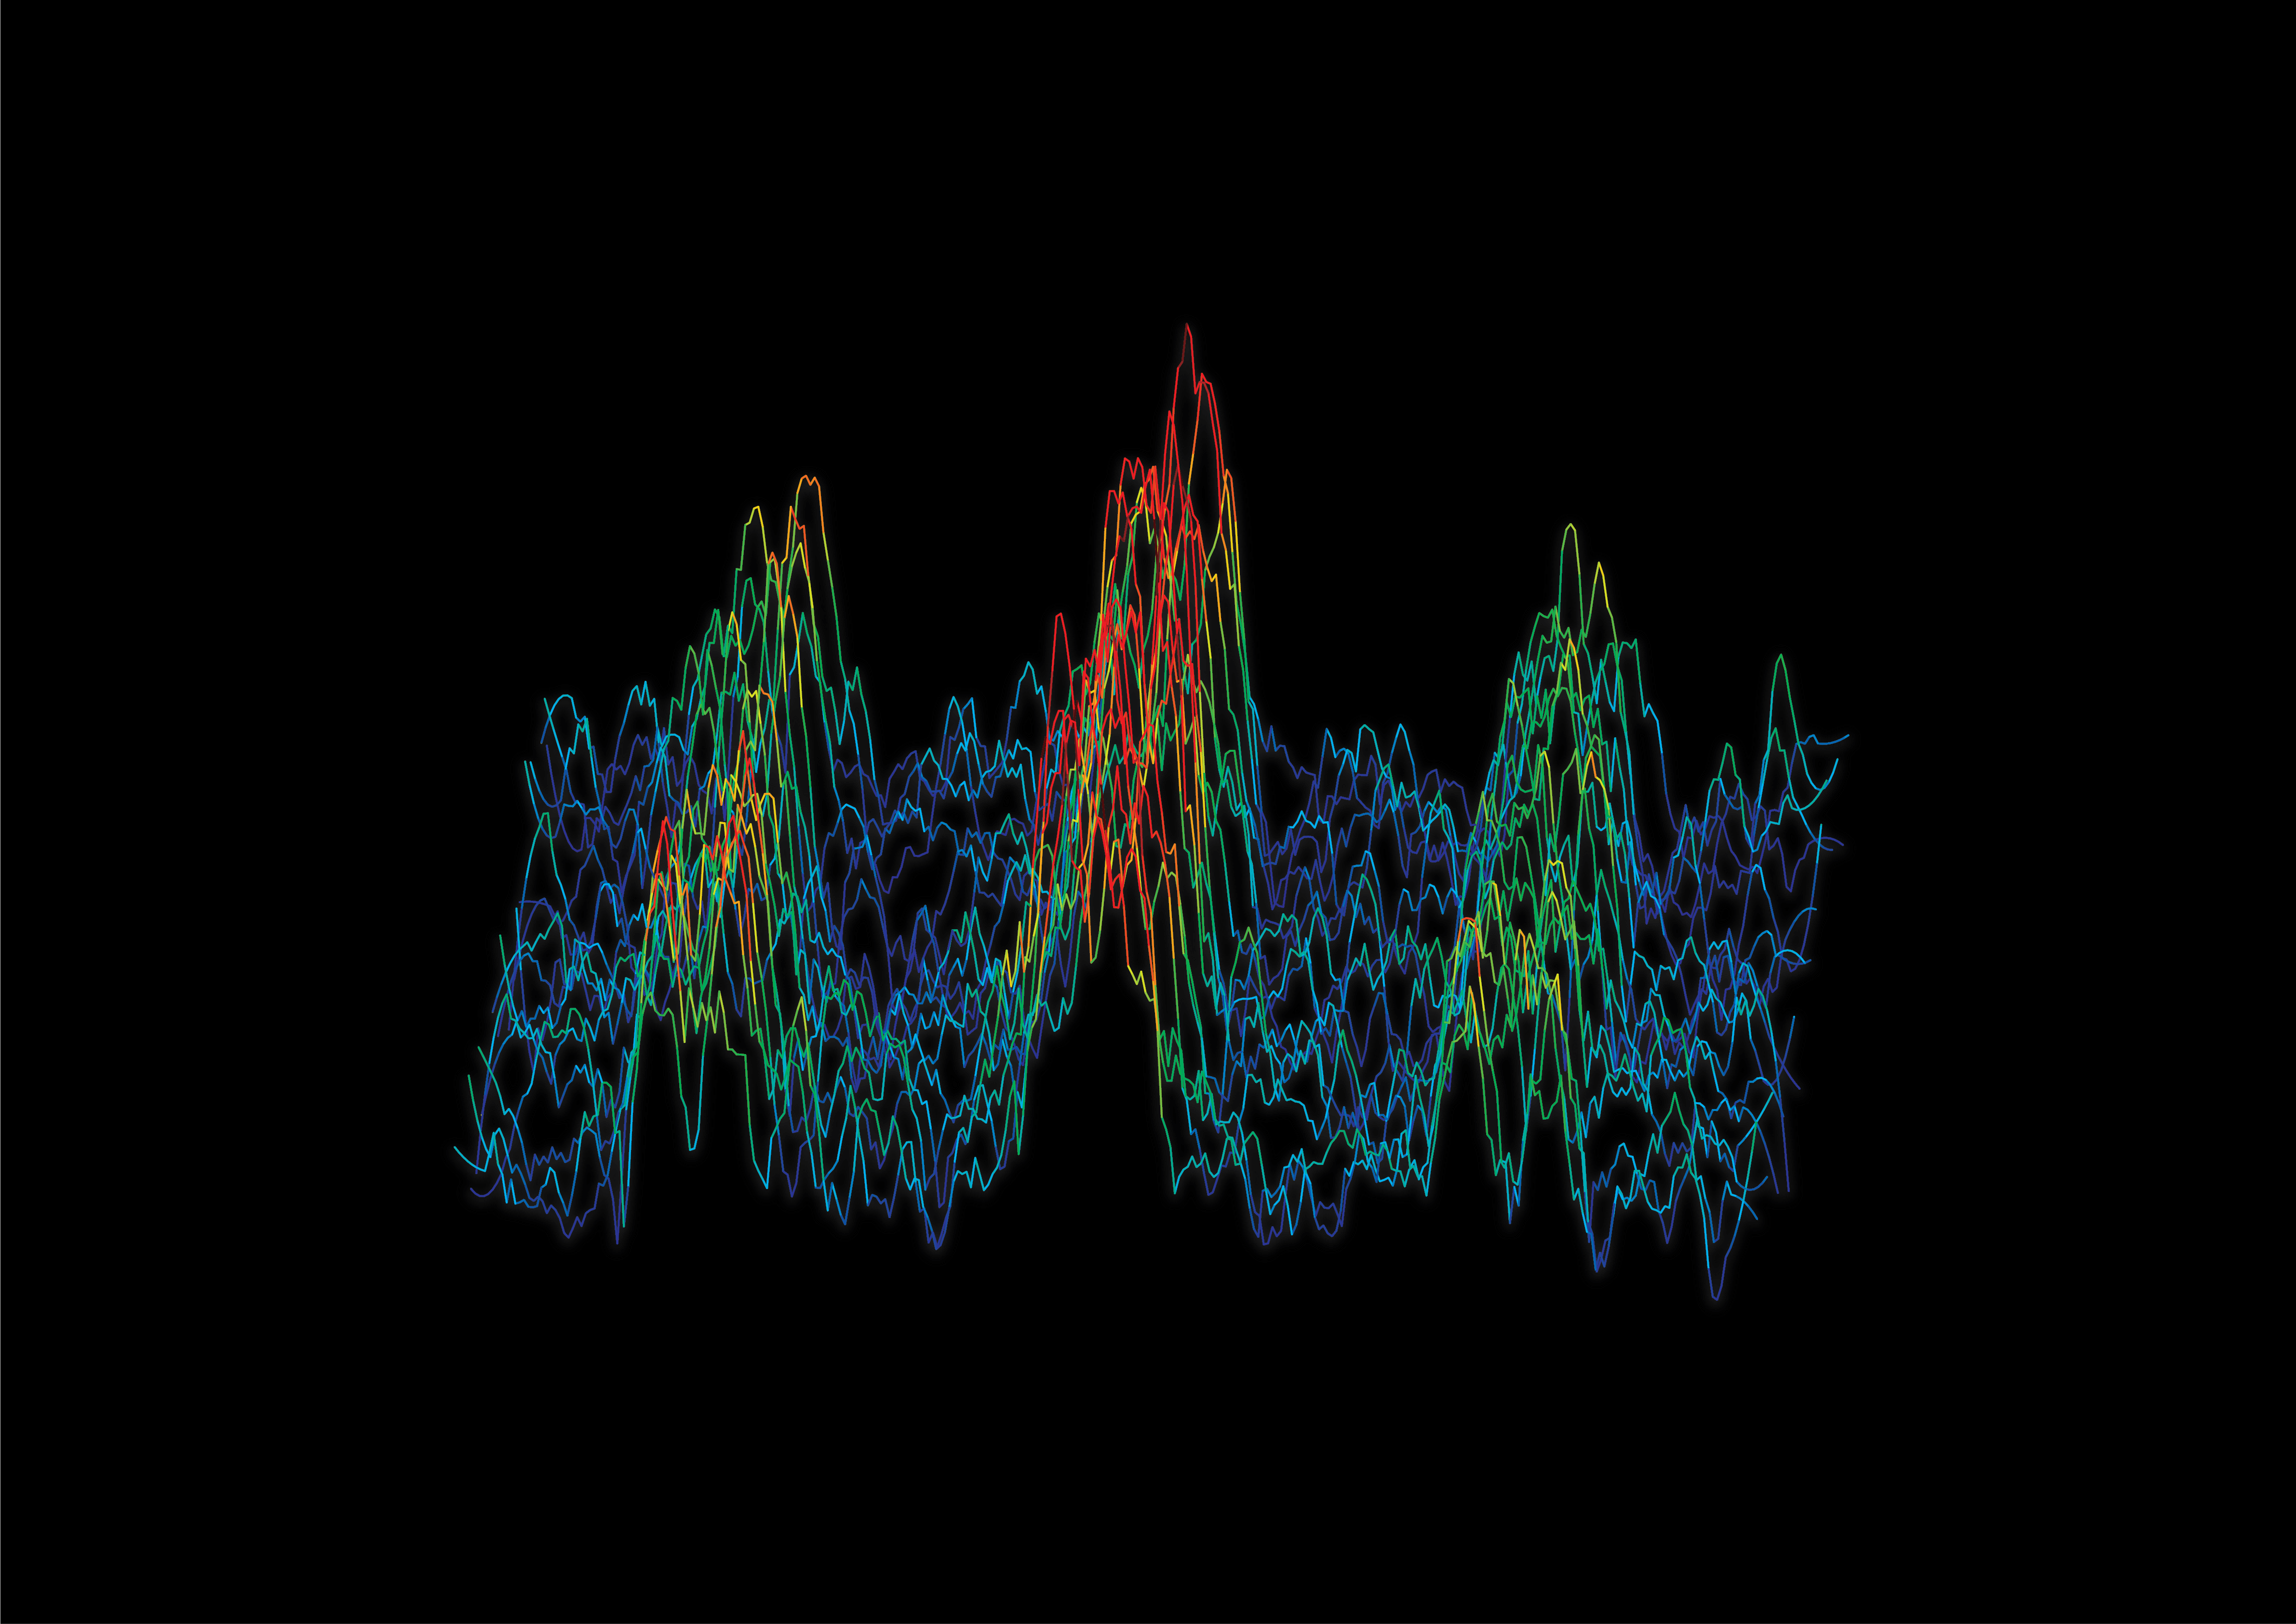 The frequency spectrum of an engineered molecule. The three peaks represent three different configurations of spins within the atomic nuclei, and the distance between the peaks depends on the exact distance between atoms forming the molecule. Photo: Dr Sam Hile